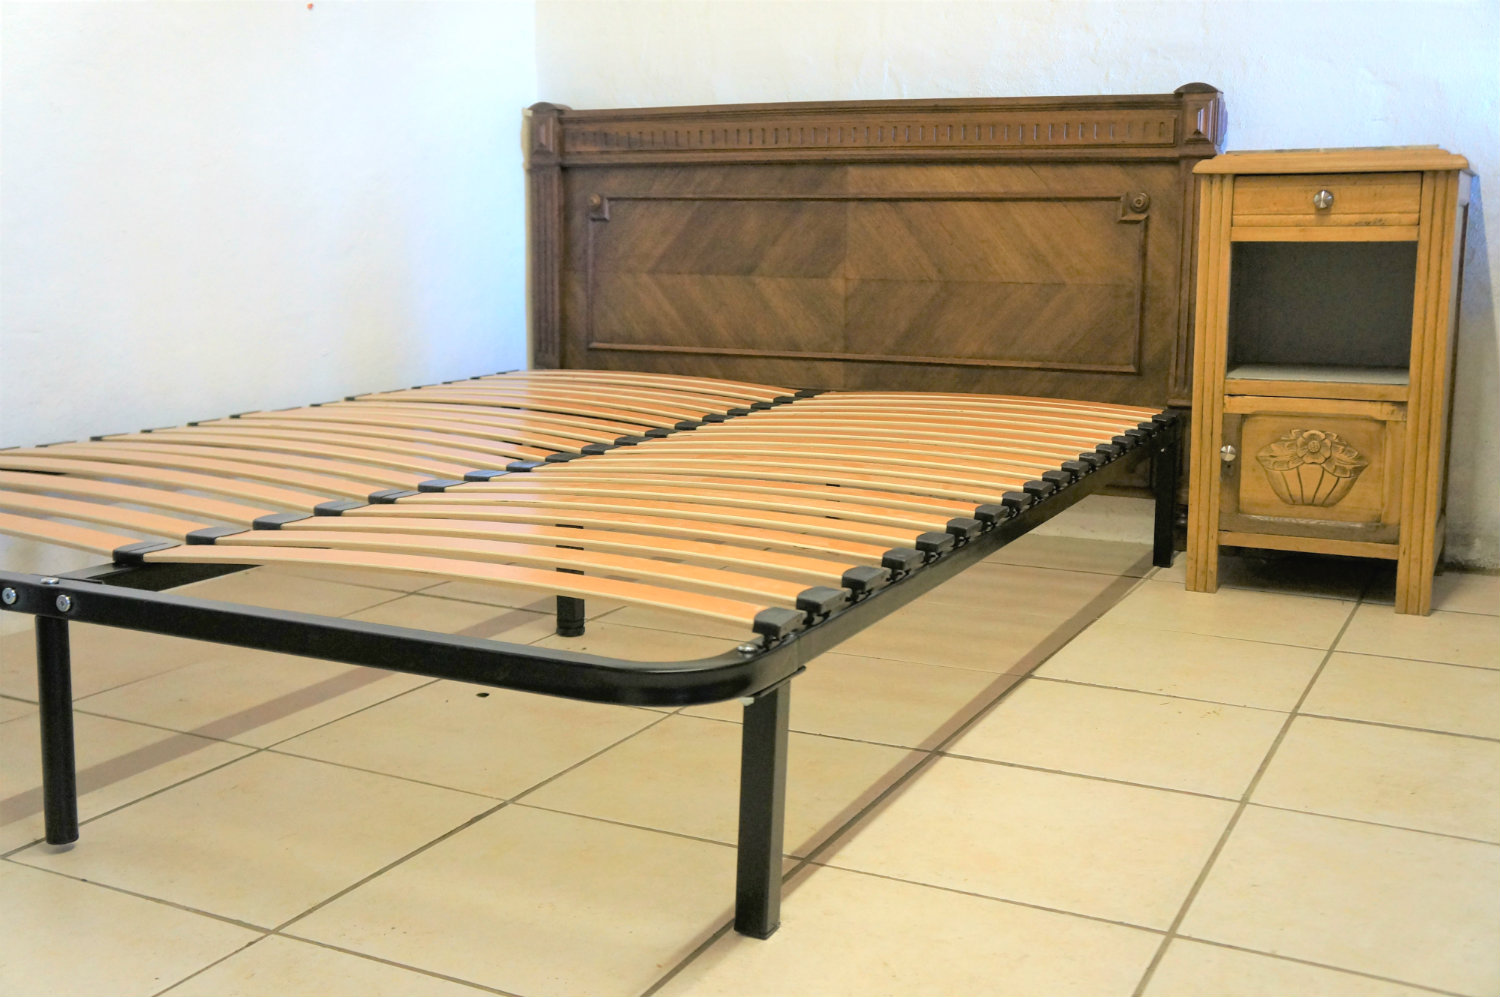 Bed 140 Cm.Slatted Bed Base With Legs Flat Pack Standard Uk Double 140 X 190 Cm